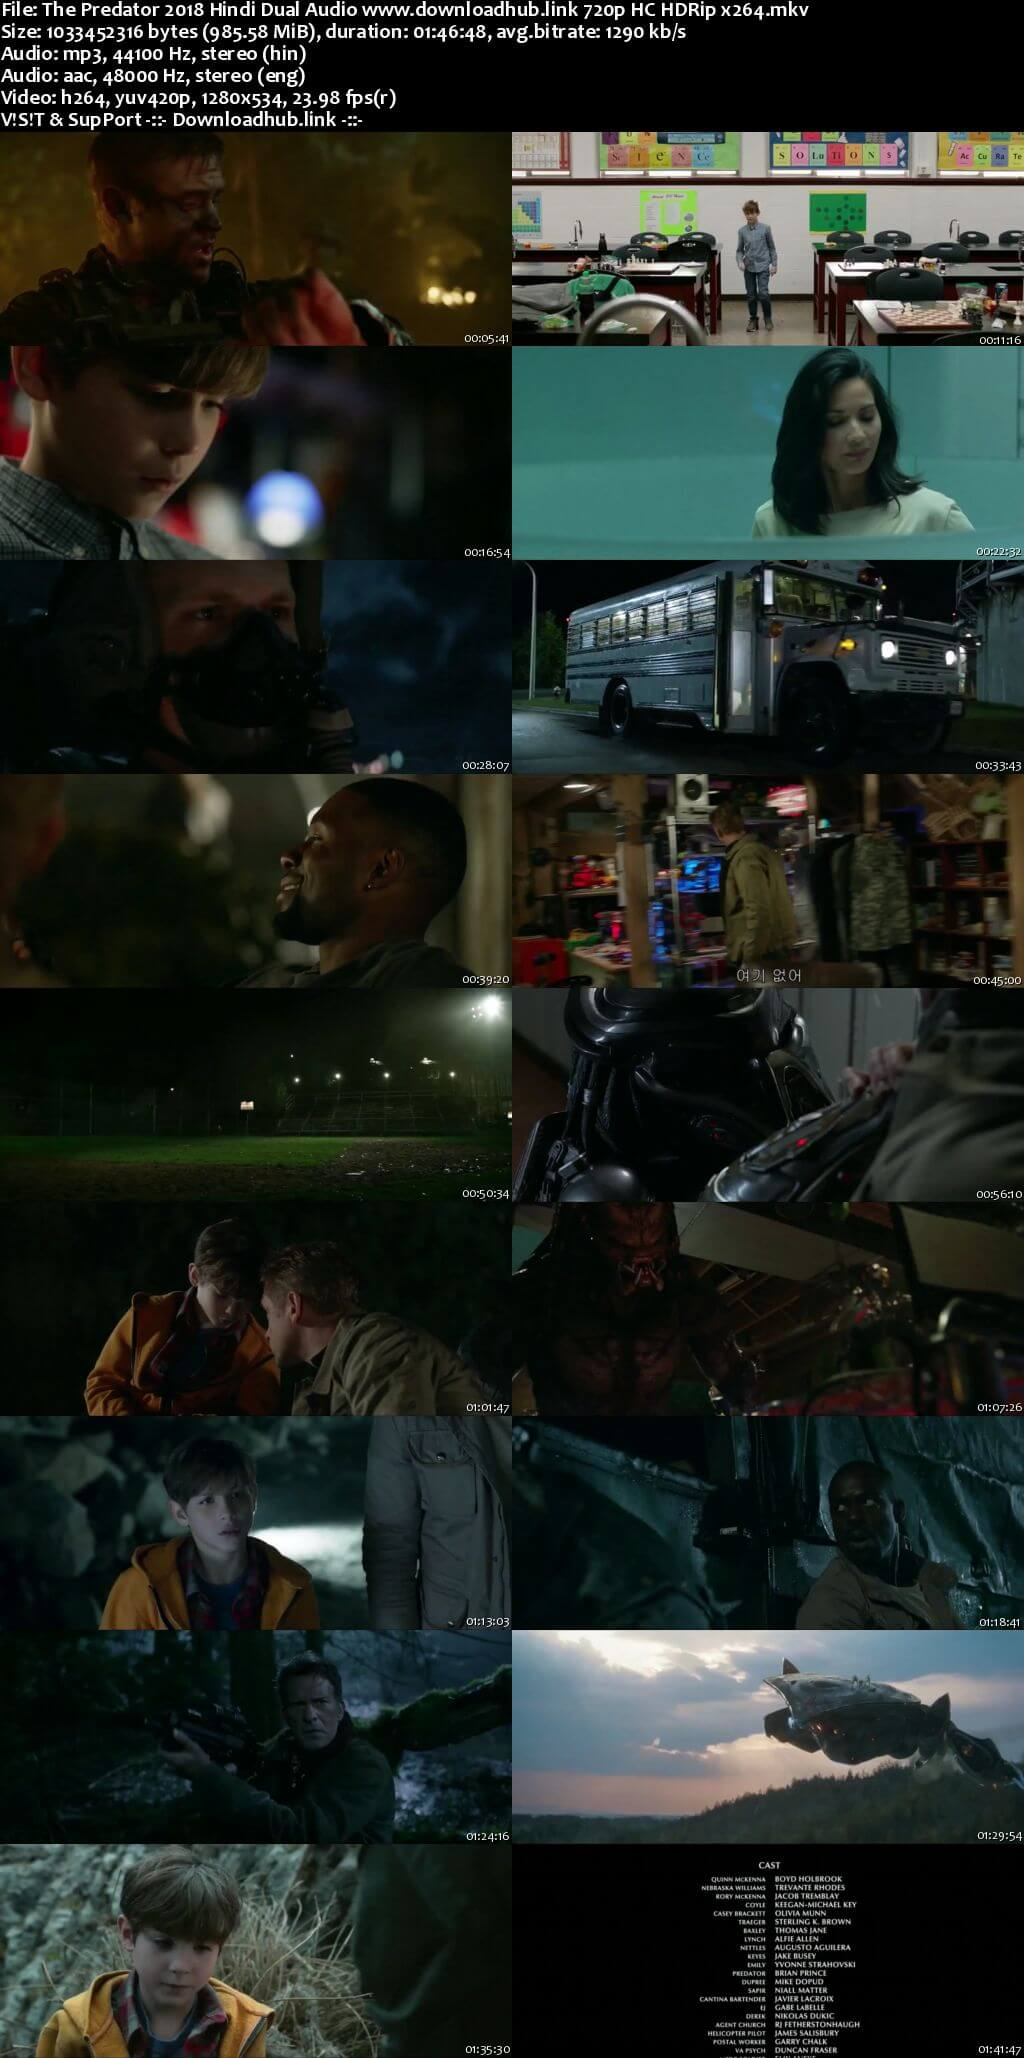 The Predator 2018 Hindi Dual Audio 720p HC HDRip x264